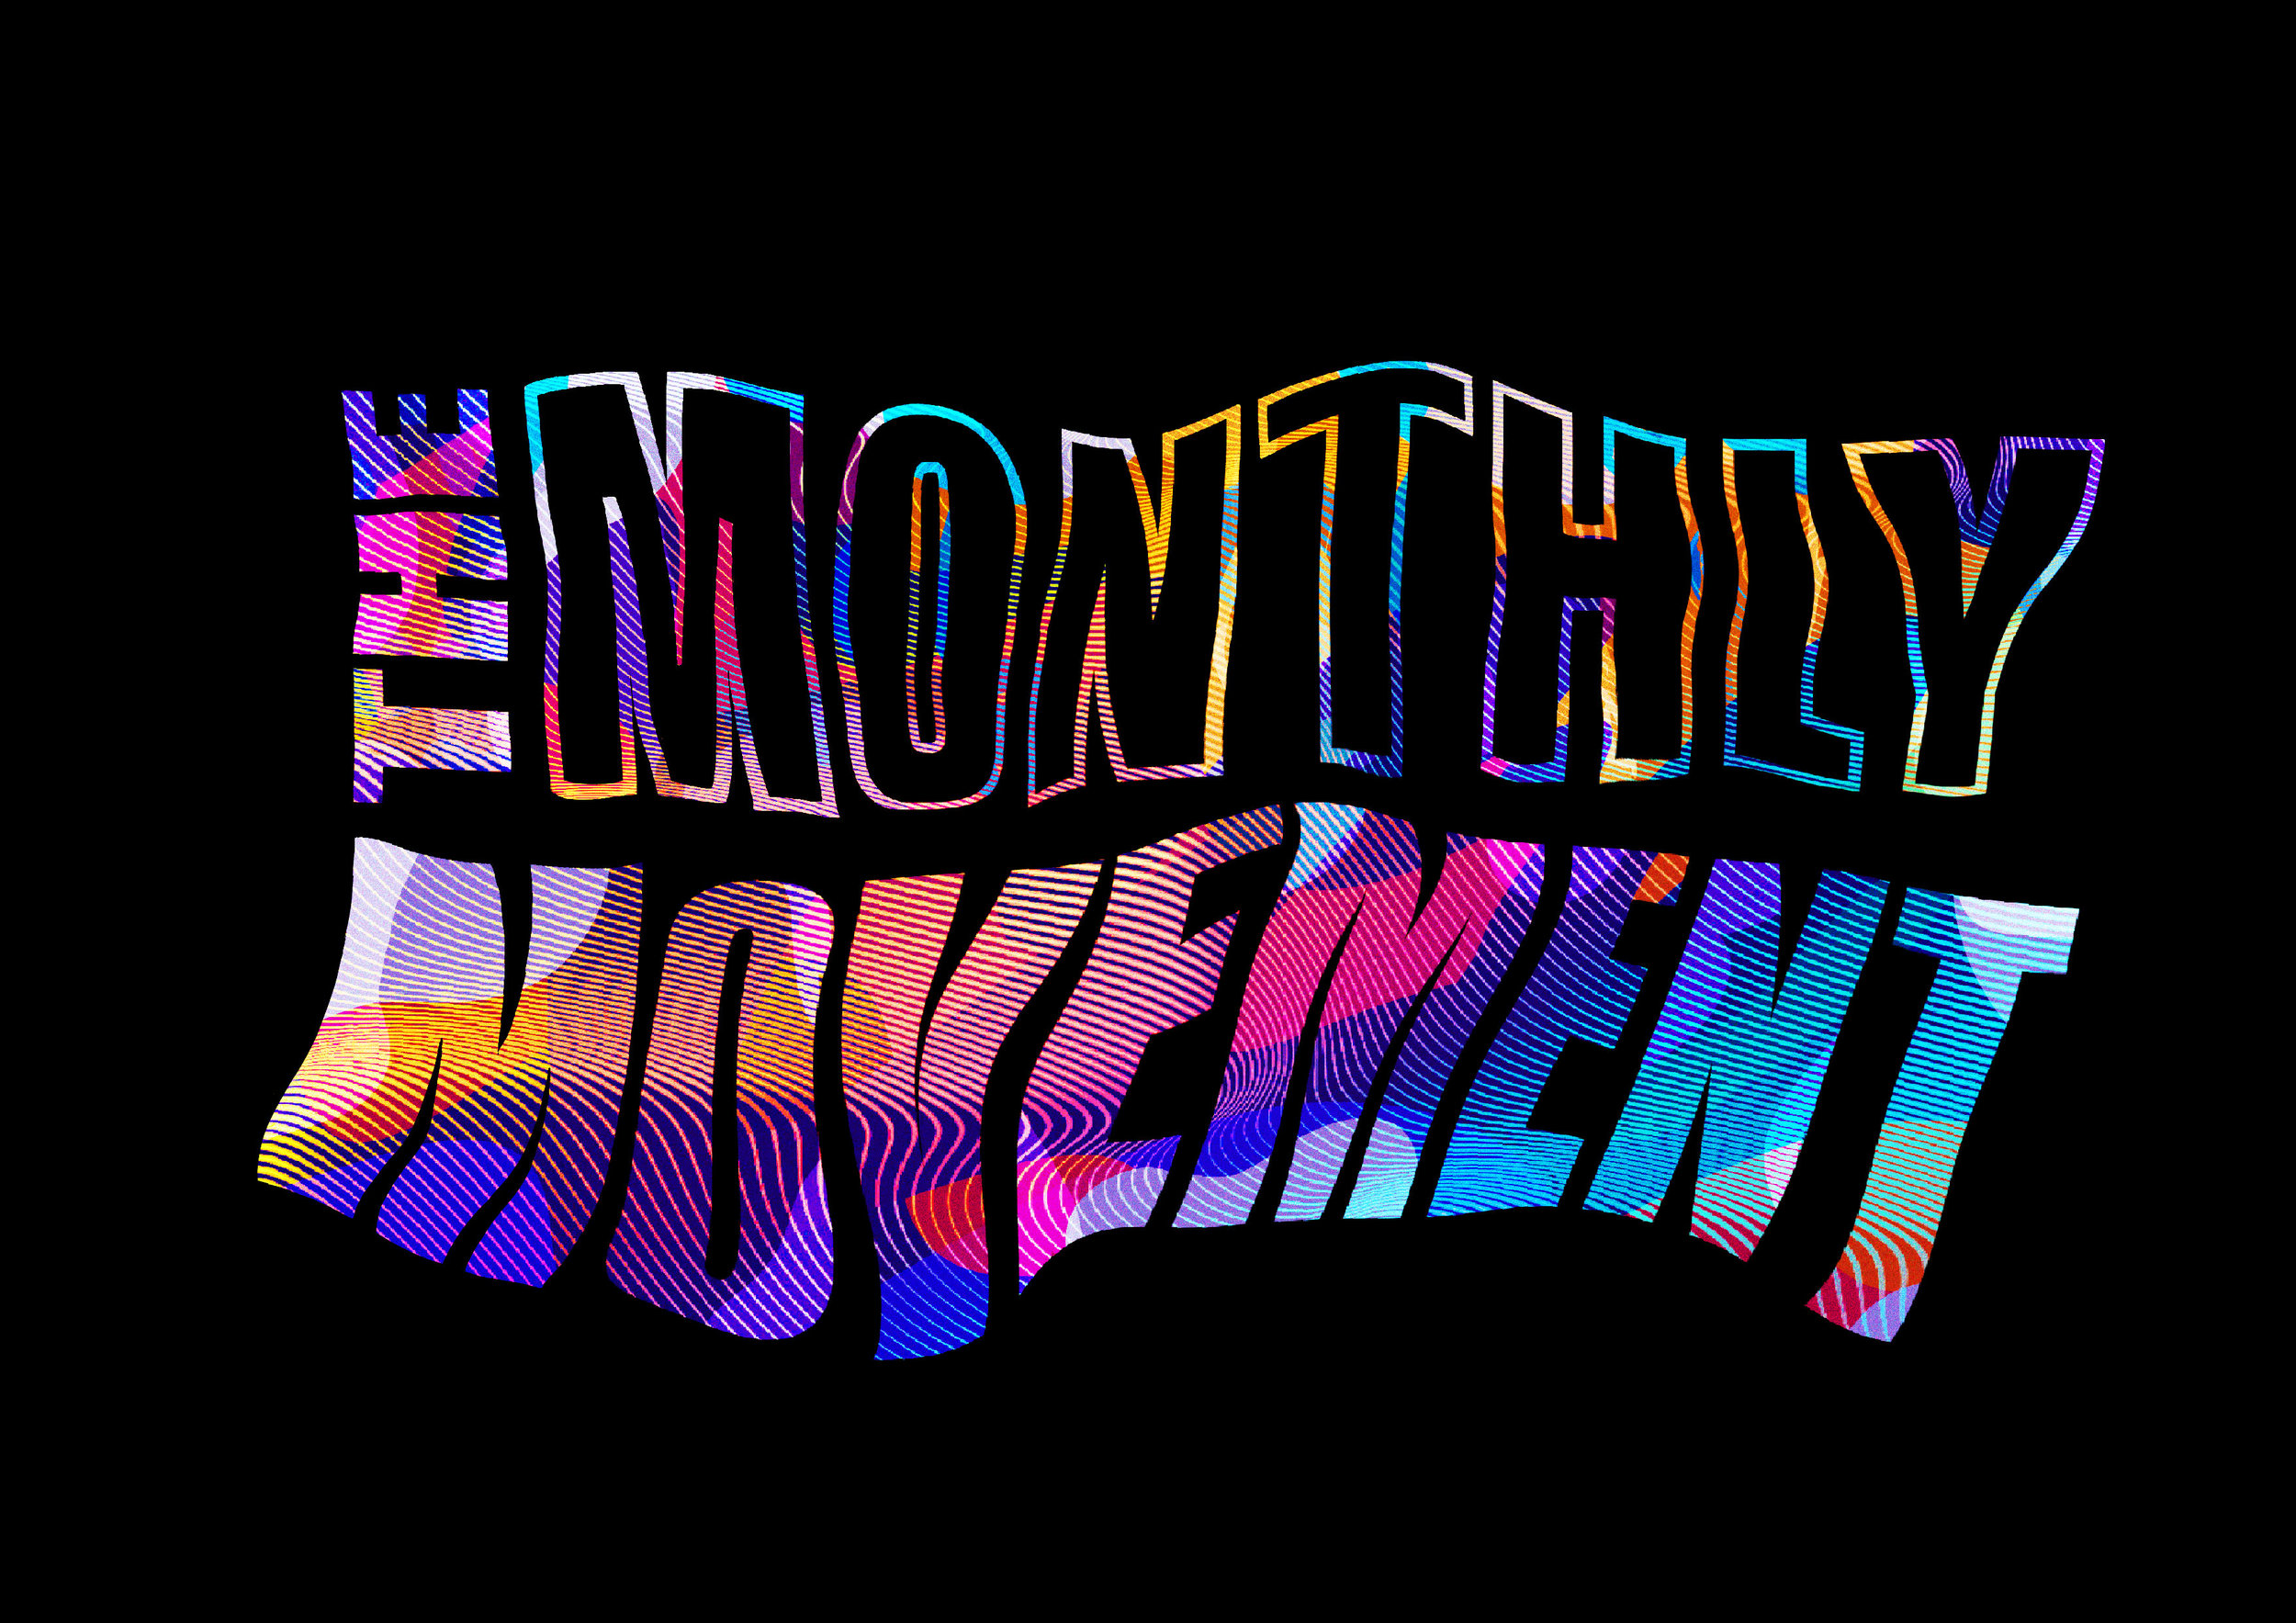 1 Monthly movements treatments_GCASFM.jpg